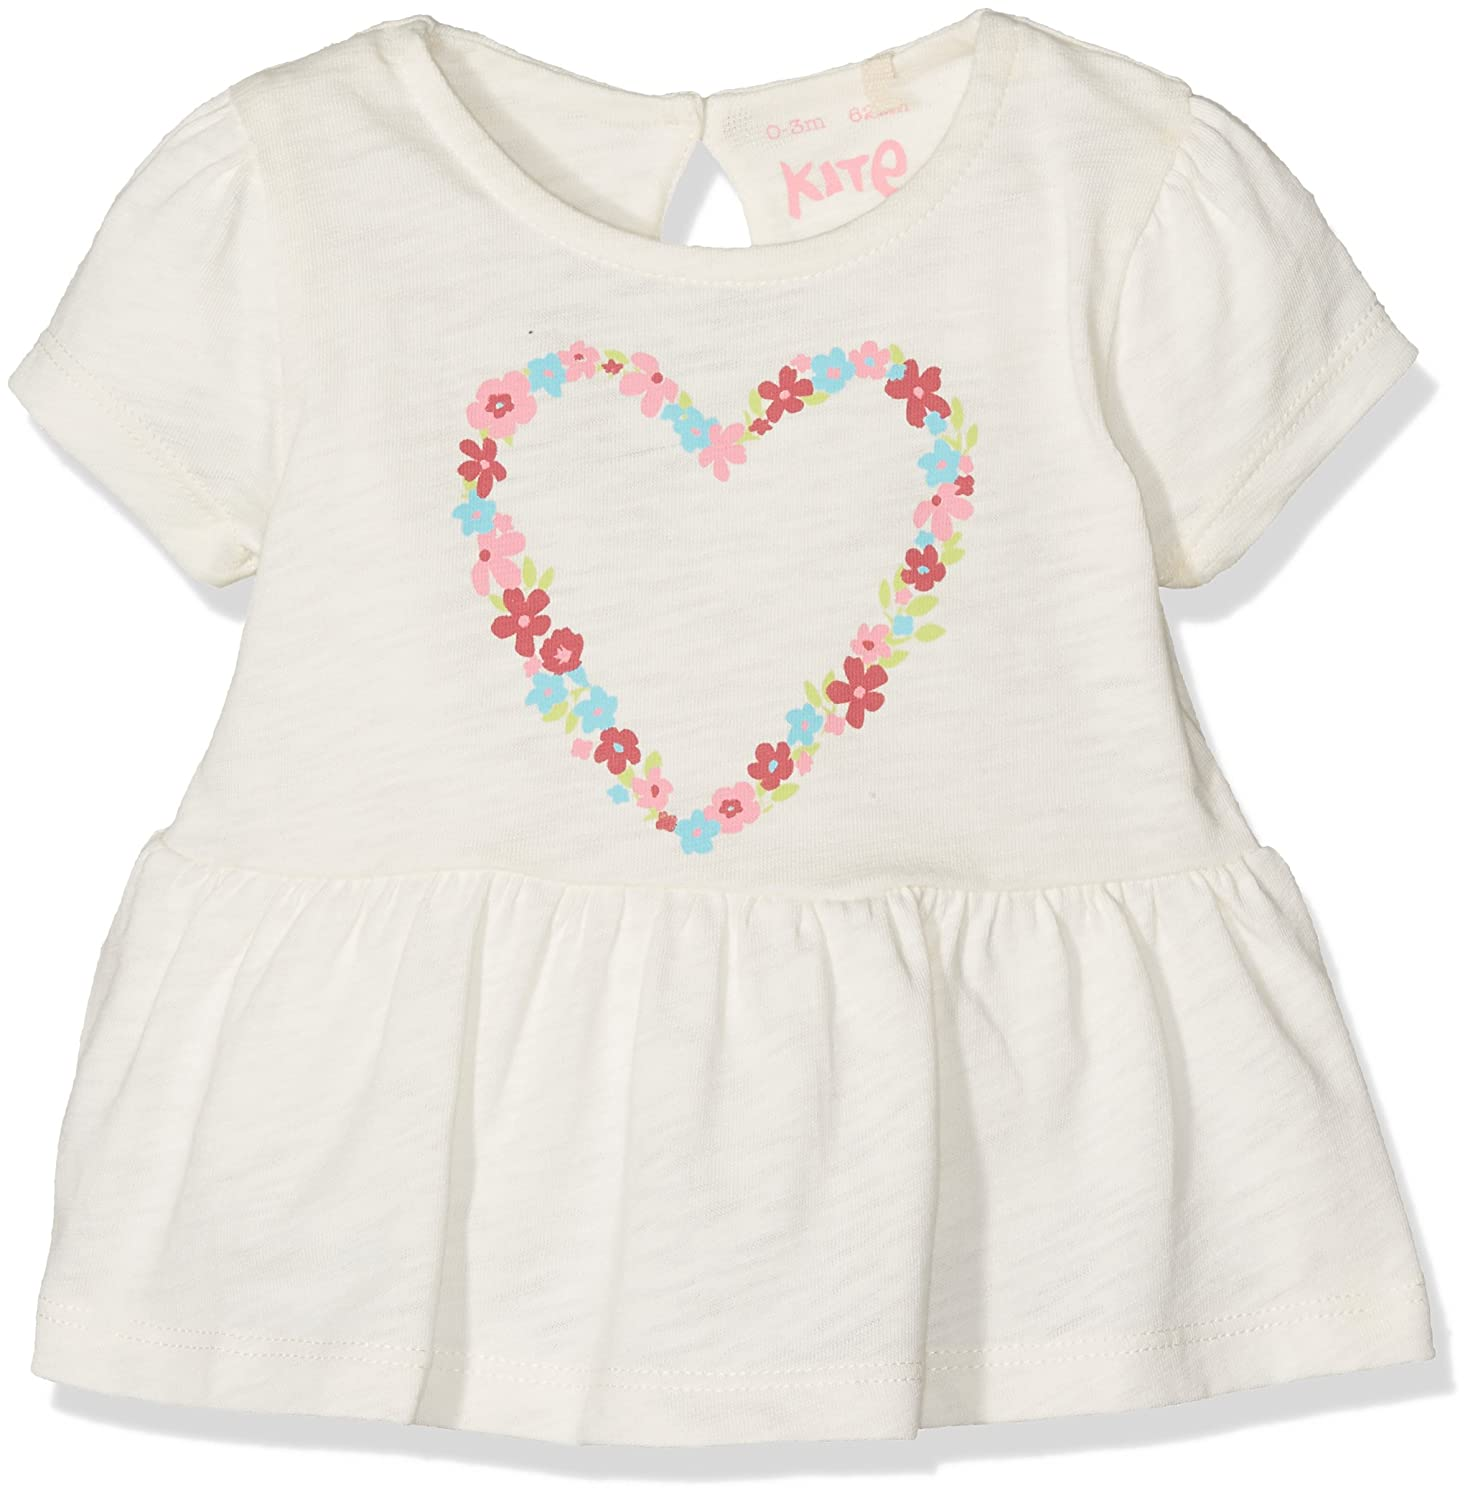 Kite Baby Girls' Heart Frill Top Blouse BG423